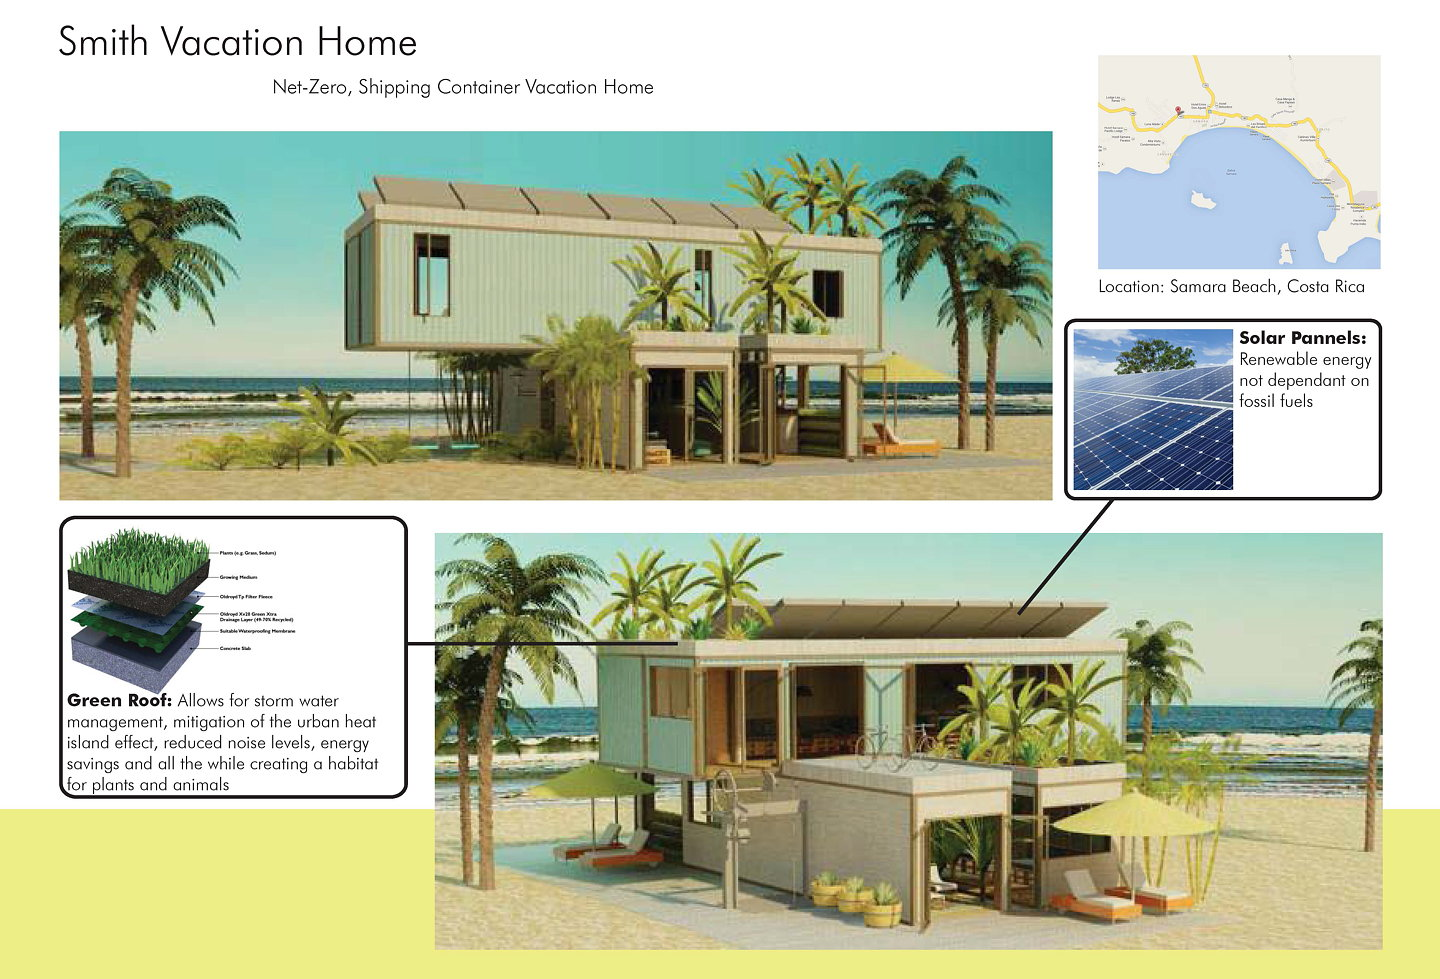 winners of 2013 iida student sustainable design competition shipping container vacation home